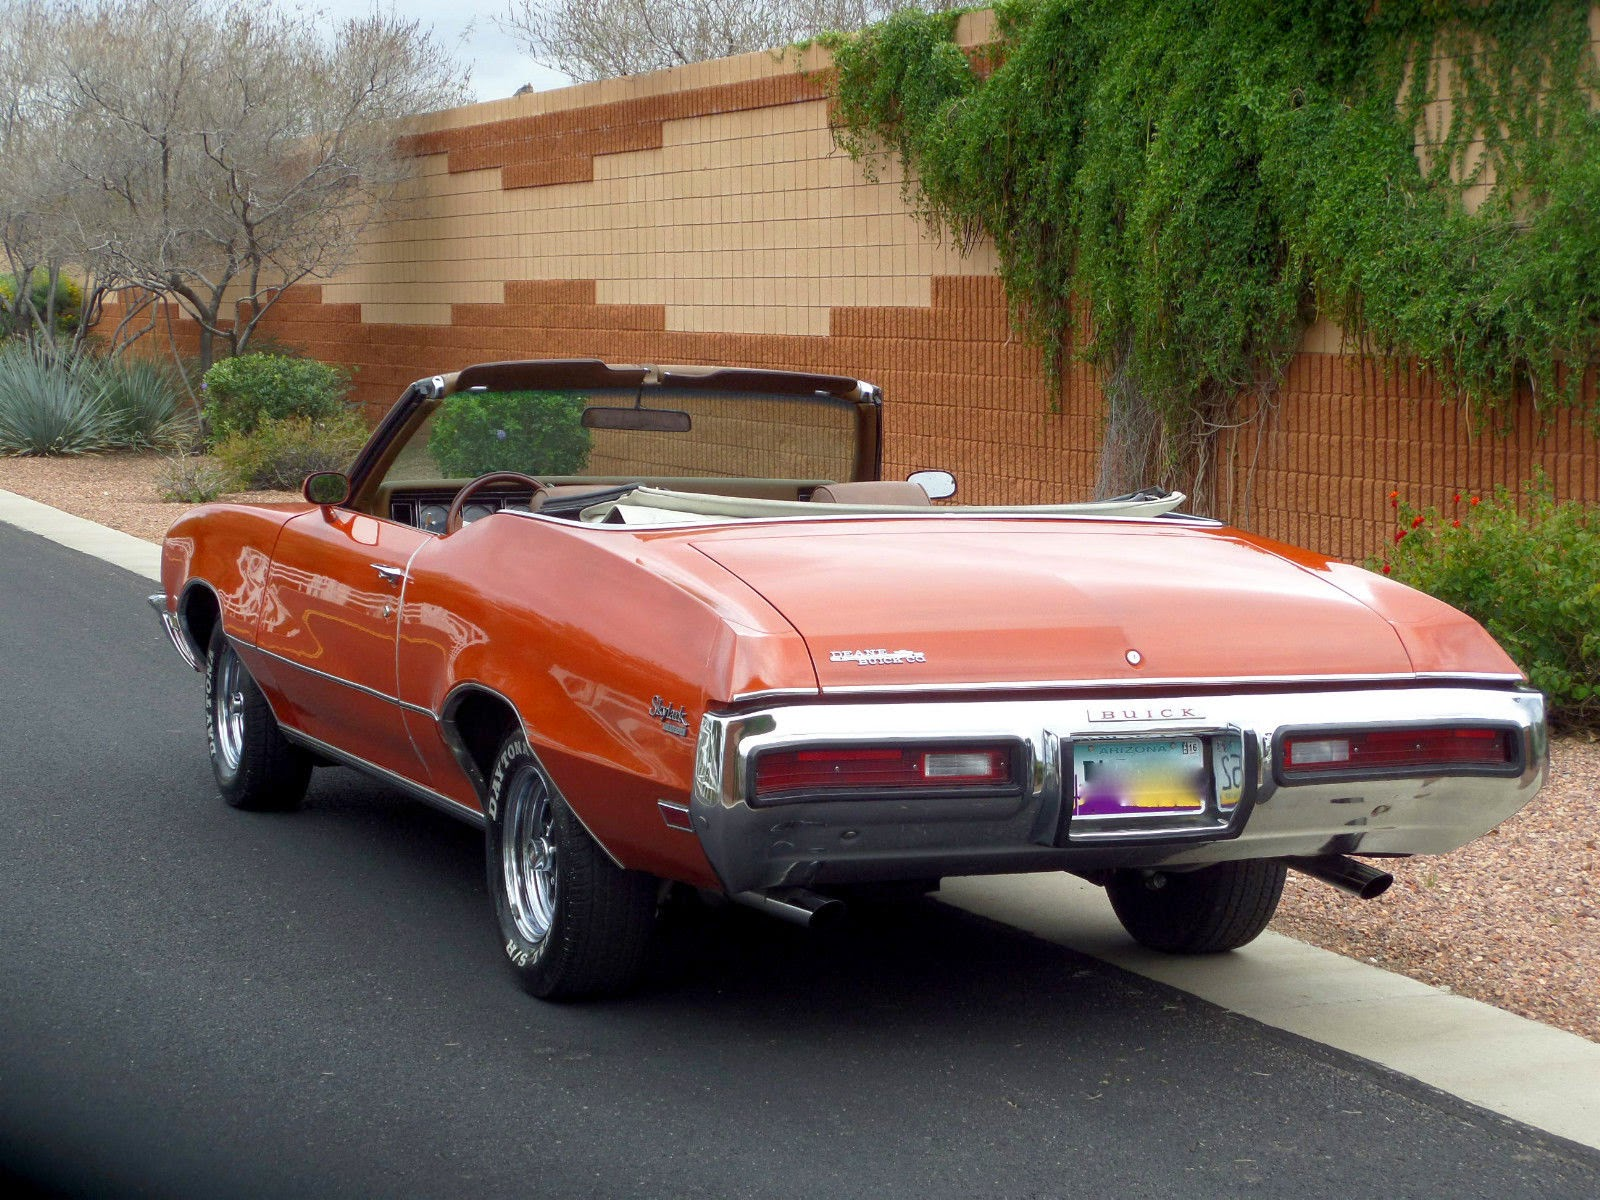 together with Buick Skylark Convertible Wallpaper additionally Fl further Ebay in addition Buick Skylark Convertible. on 1972 buick skylark custom convertible